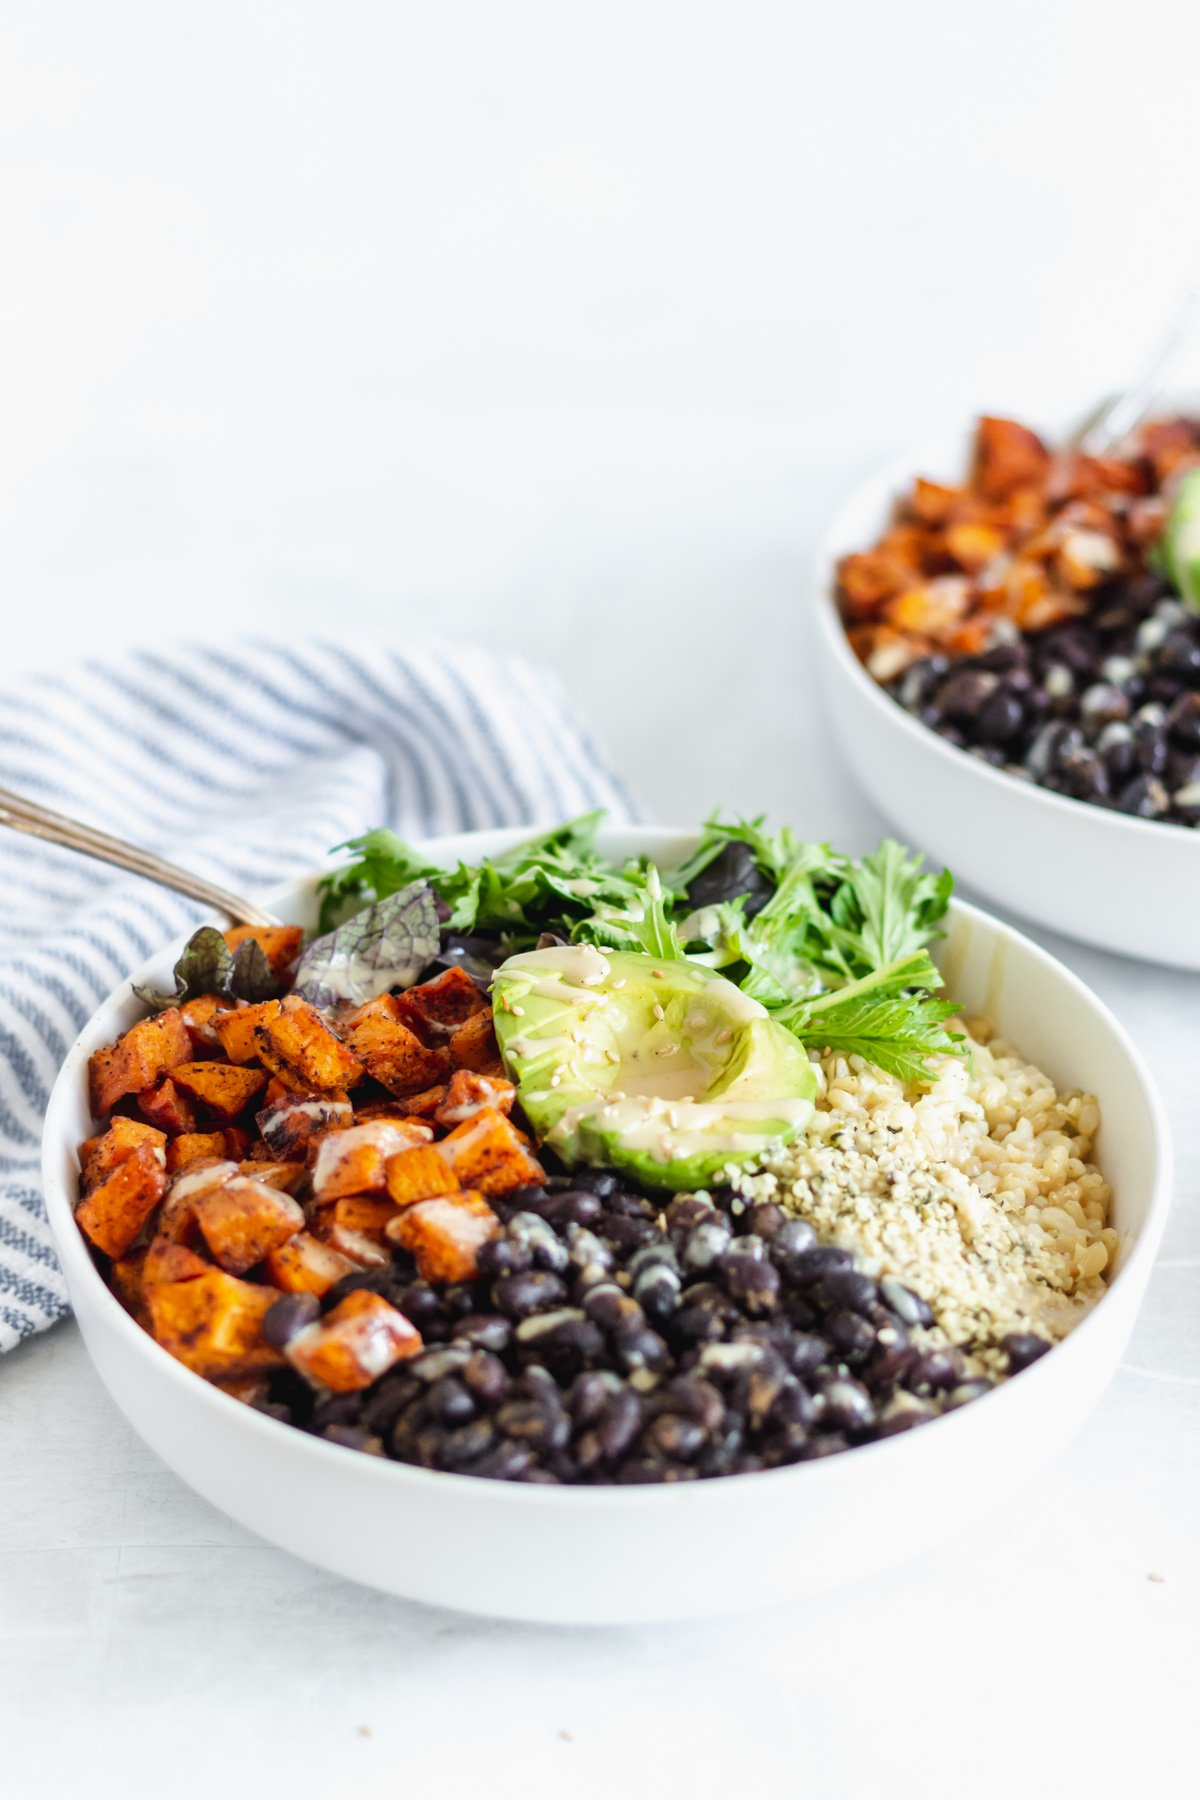 sweet potato, black beans, brown rice, leafy greens, and avocado in a buddha bowl with from 45º angle